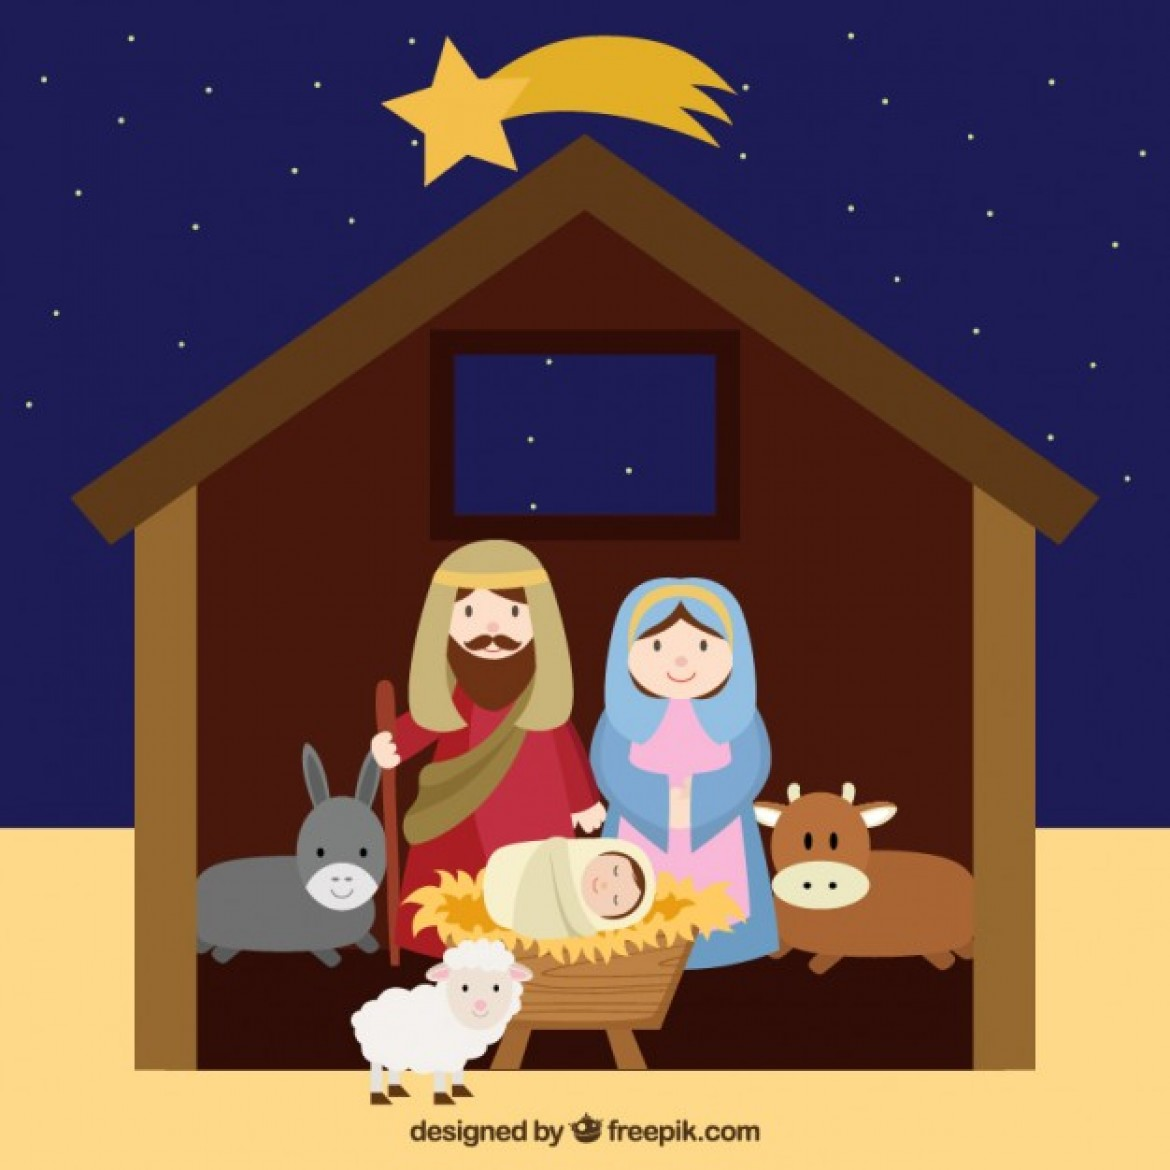 lovely nativity scene source freepik license free for commercial use ...